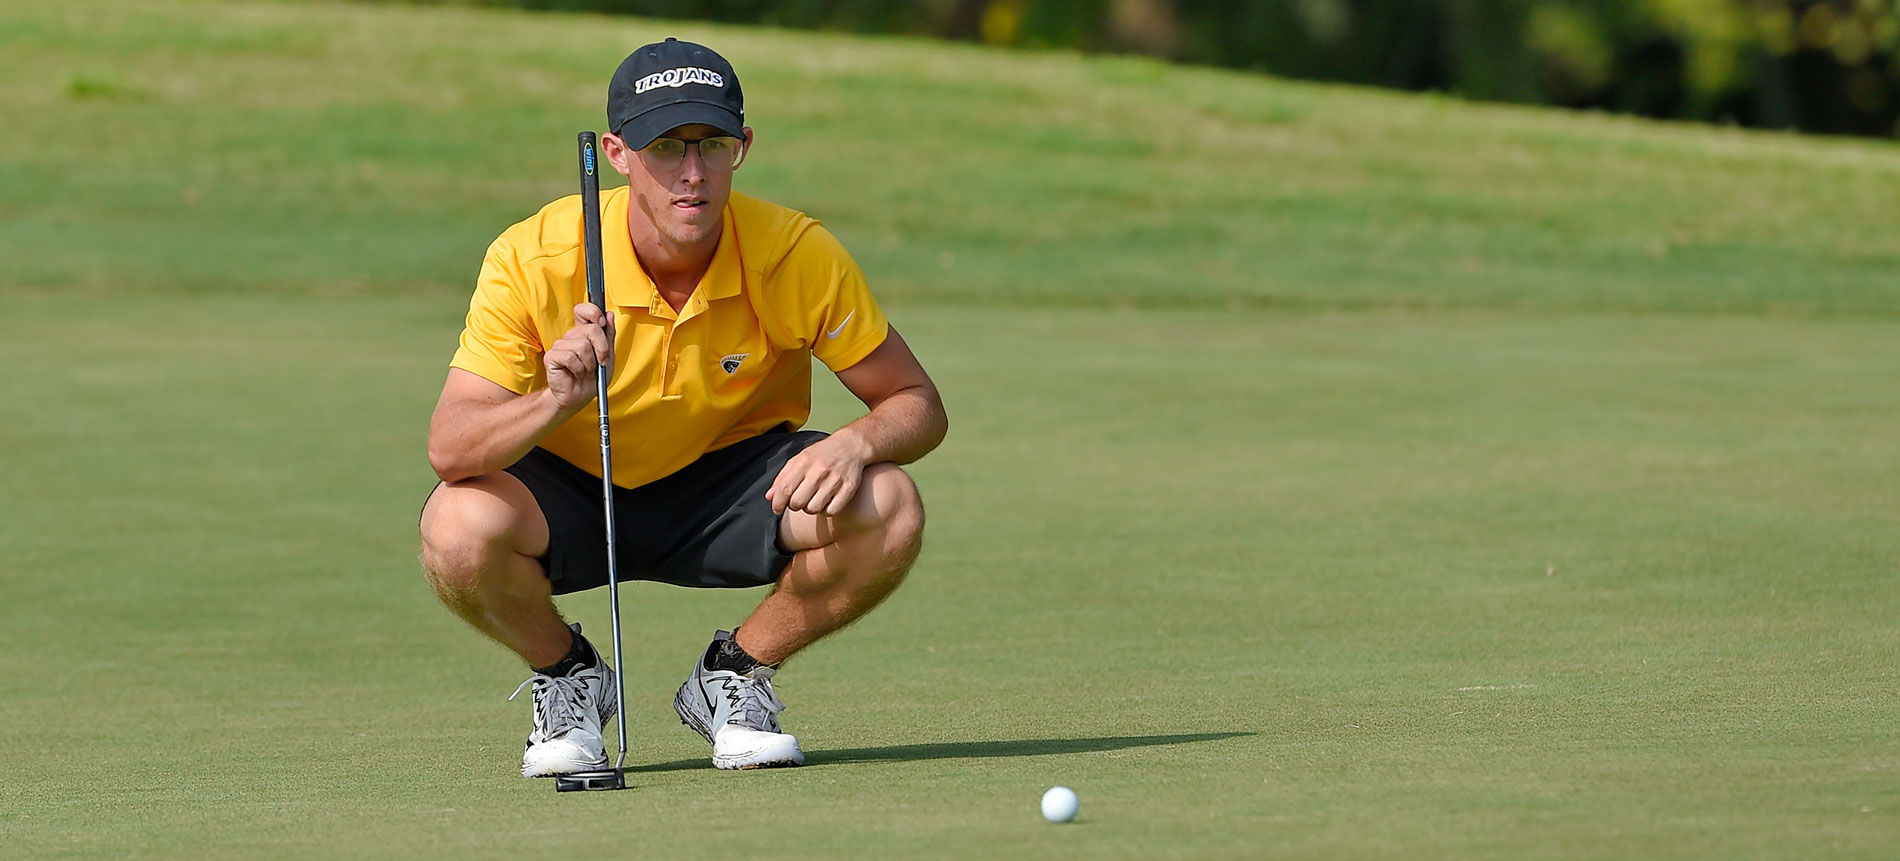 Men's Golf Tied for 18th Place after Day One of Bearcat Classic